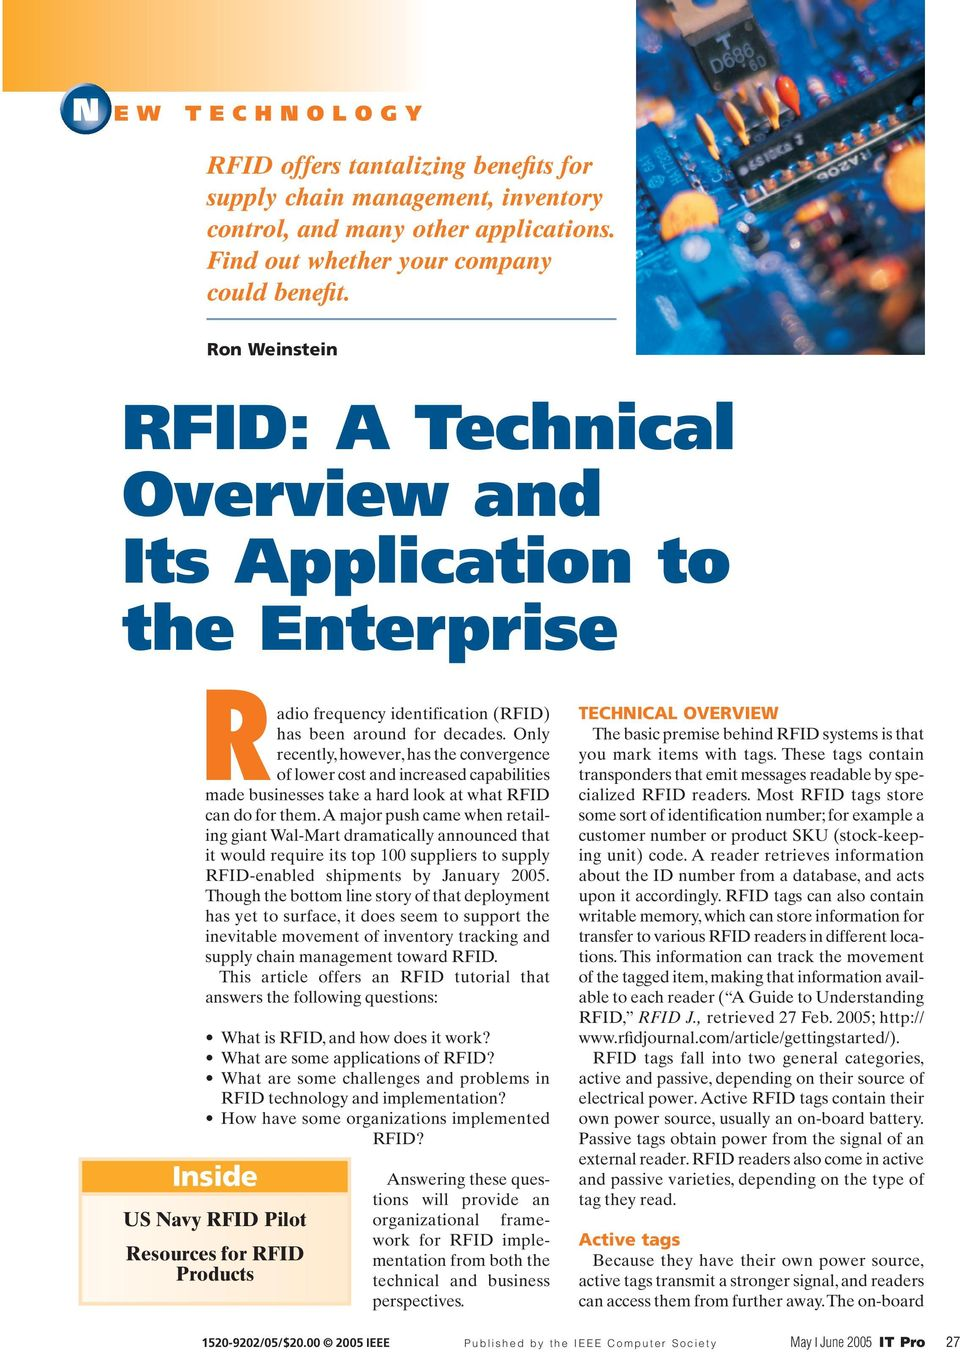 Only recently, however, has the convergence of lower cost and increased capabilities made businesses take a hard look at what RFID can do for them.